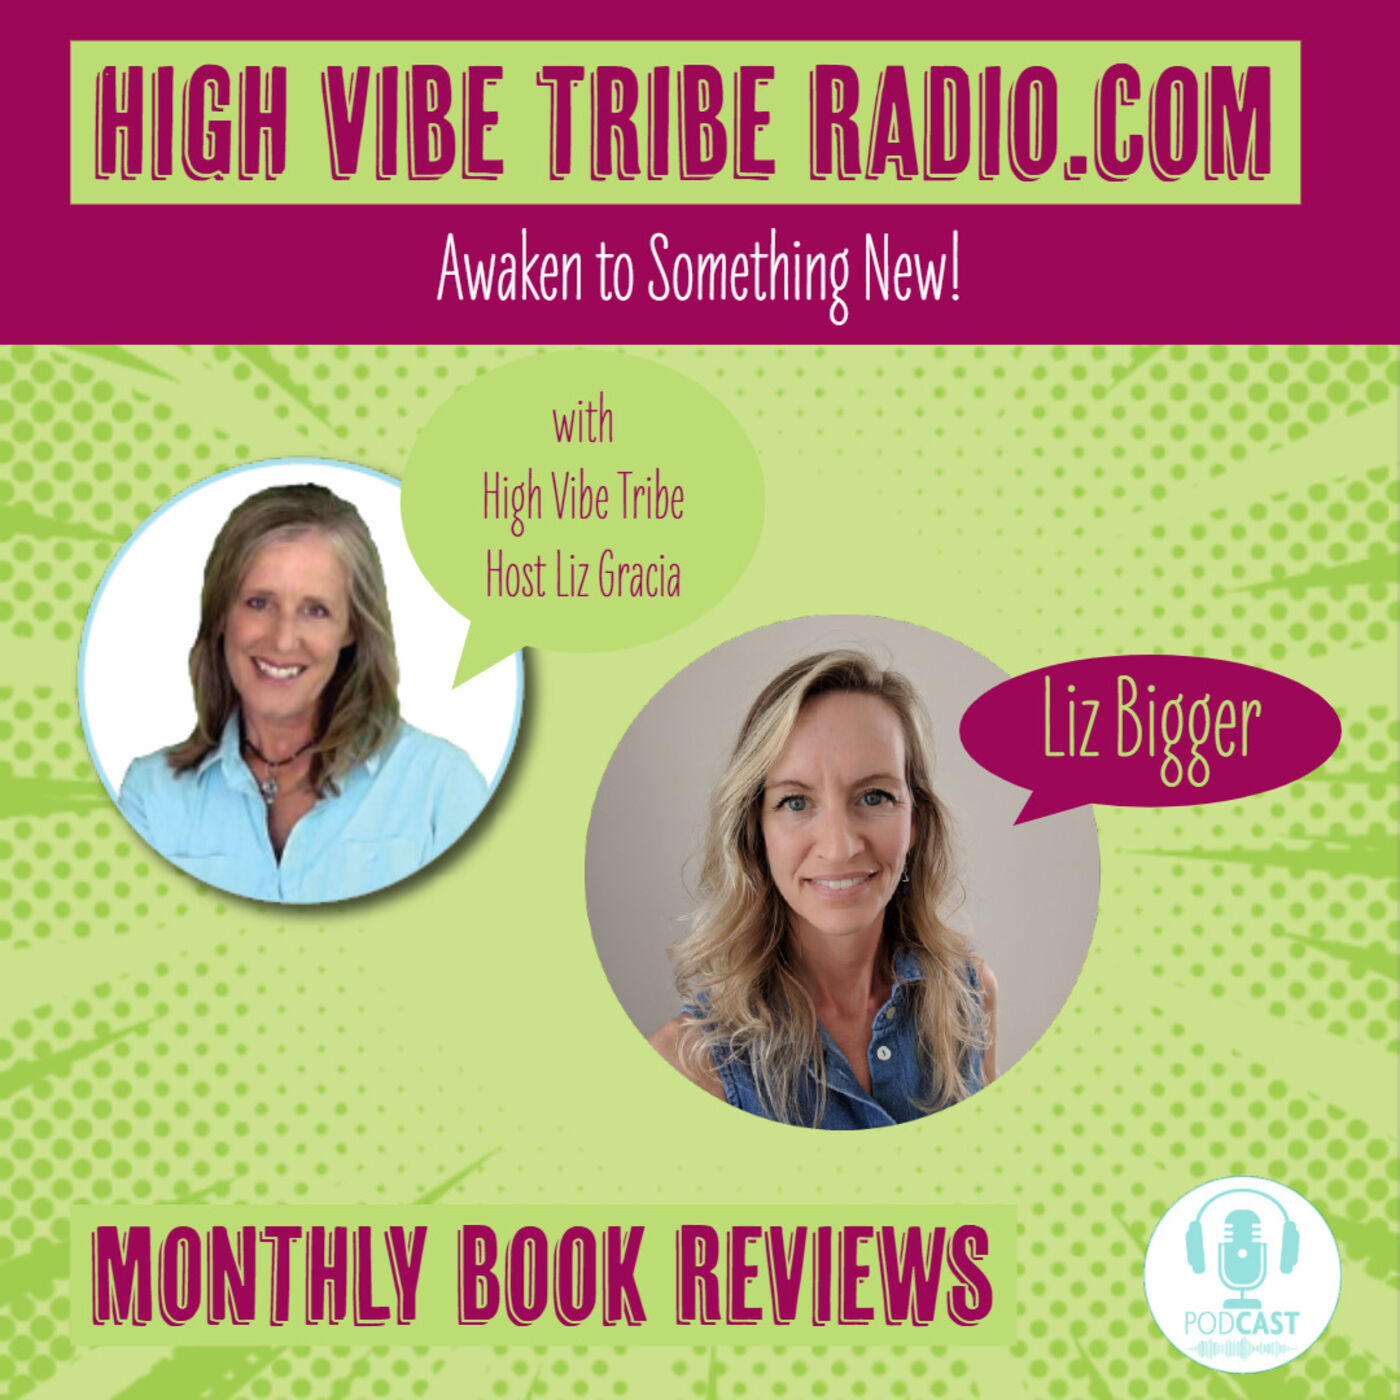 High Vibe Tribe Monthly Book Review Podcast for September 2019